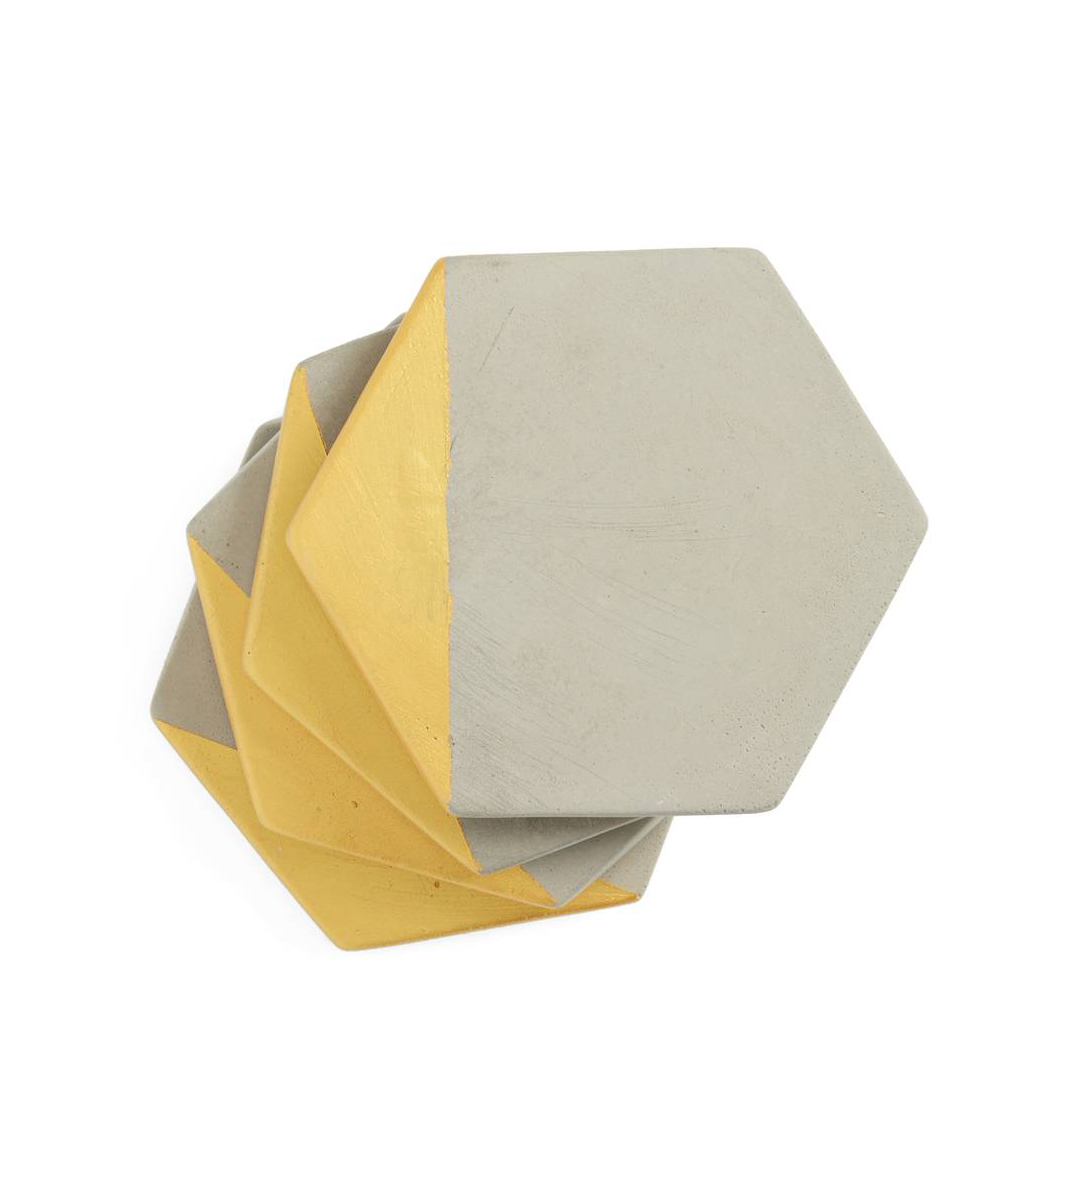 Set of Four Cement Coasters